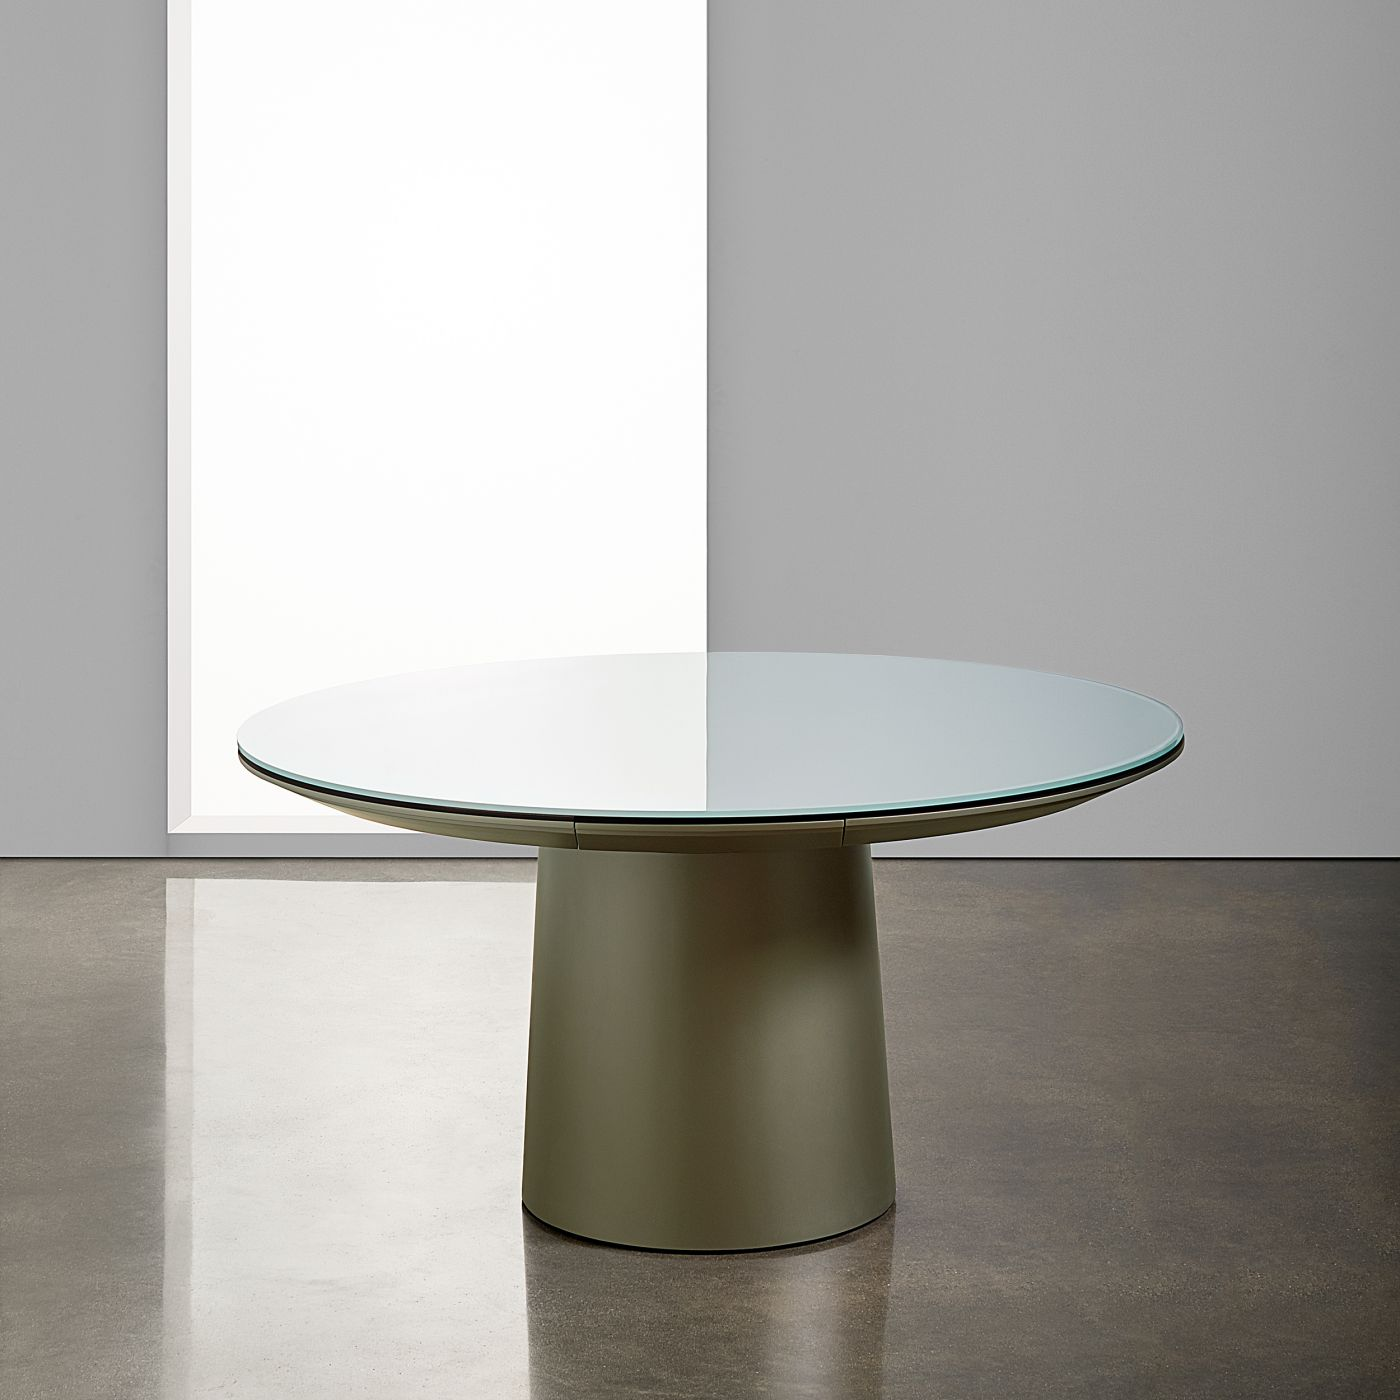 A round tapered base table offers modern simplicity and connectivity.